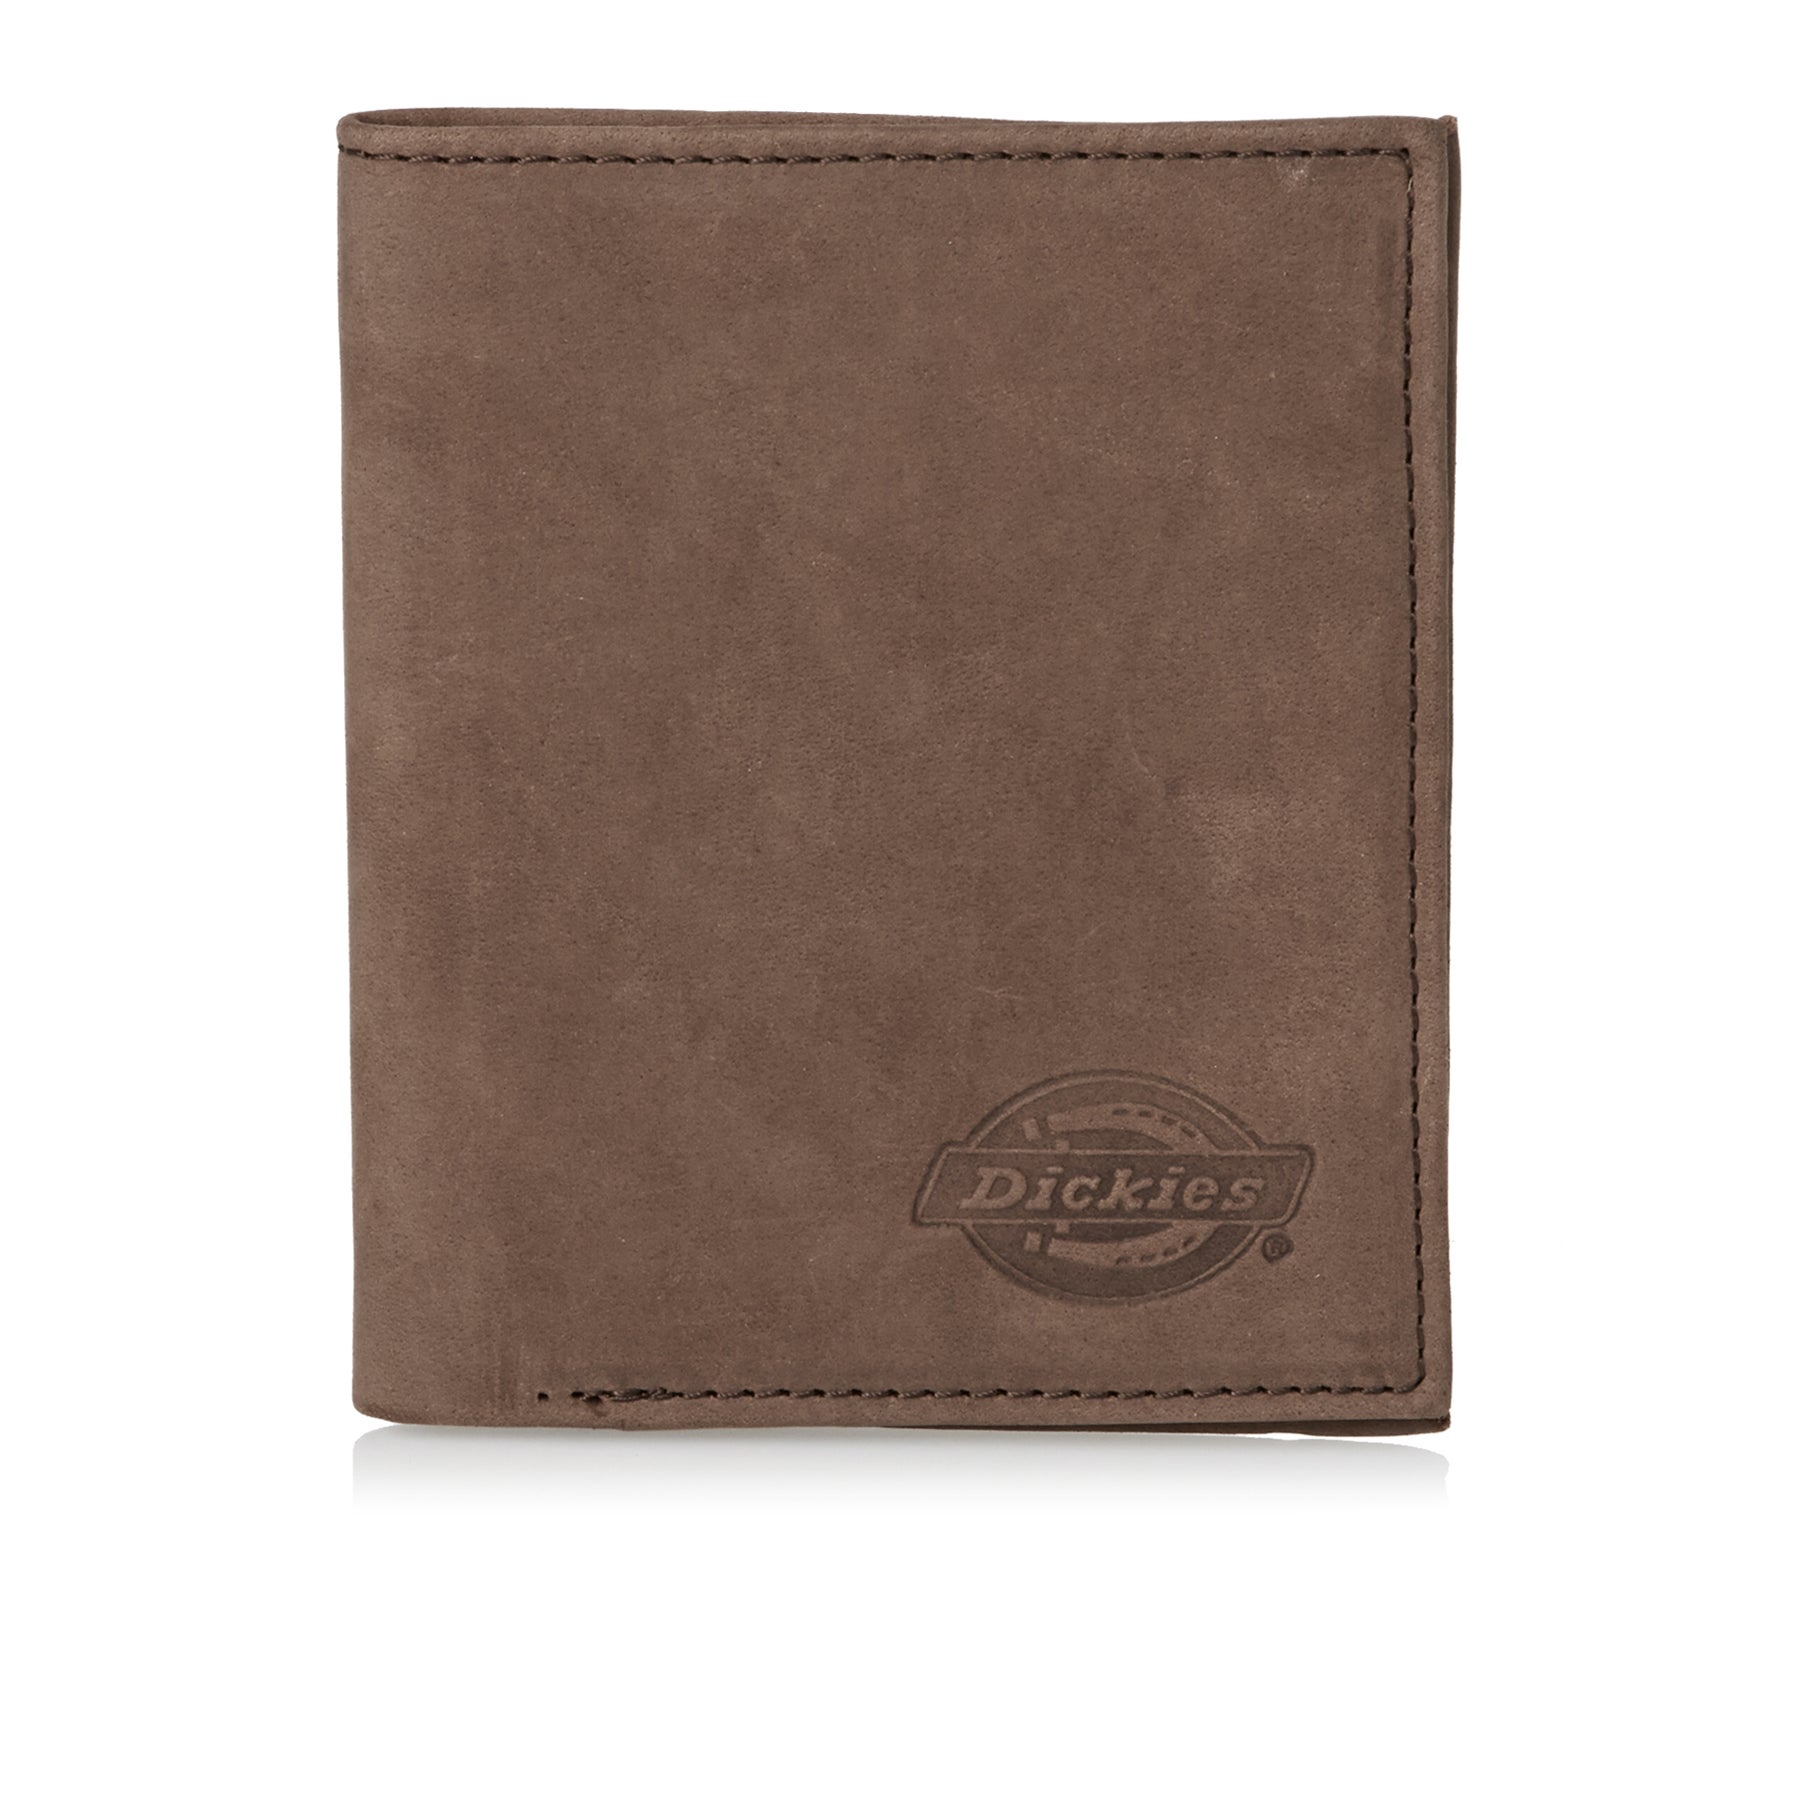 Billetera Dickies Ridgeville - Brown